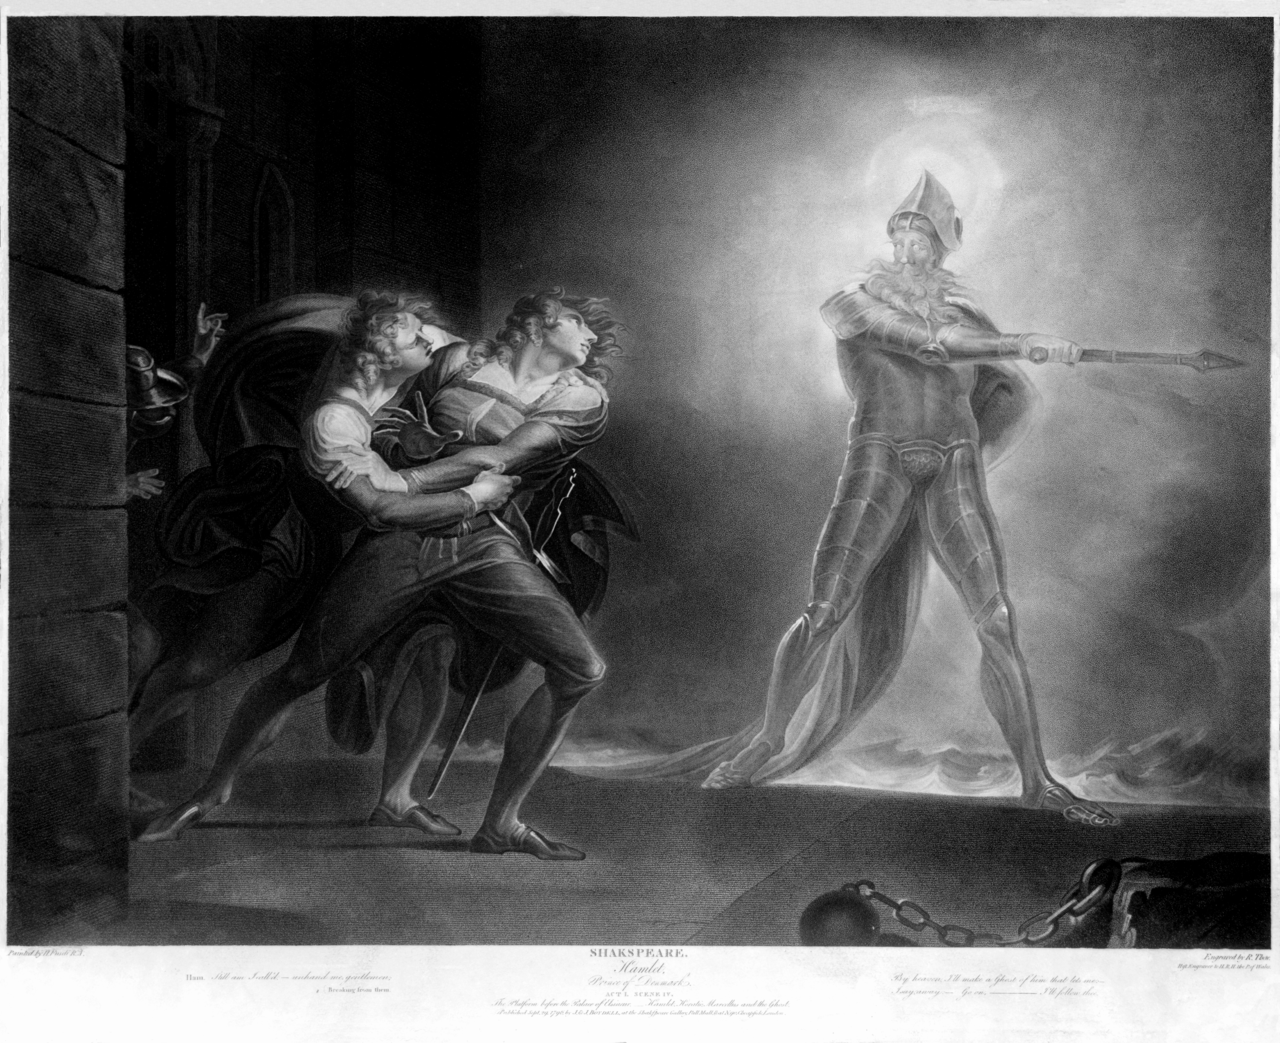 hamlet and the ghost by henry fuseli illustration  hamlet and the ghost by henry fuseli 1789